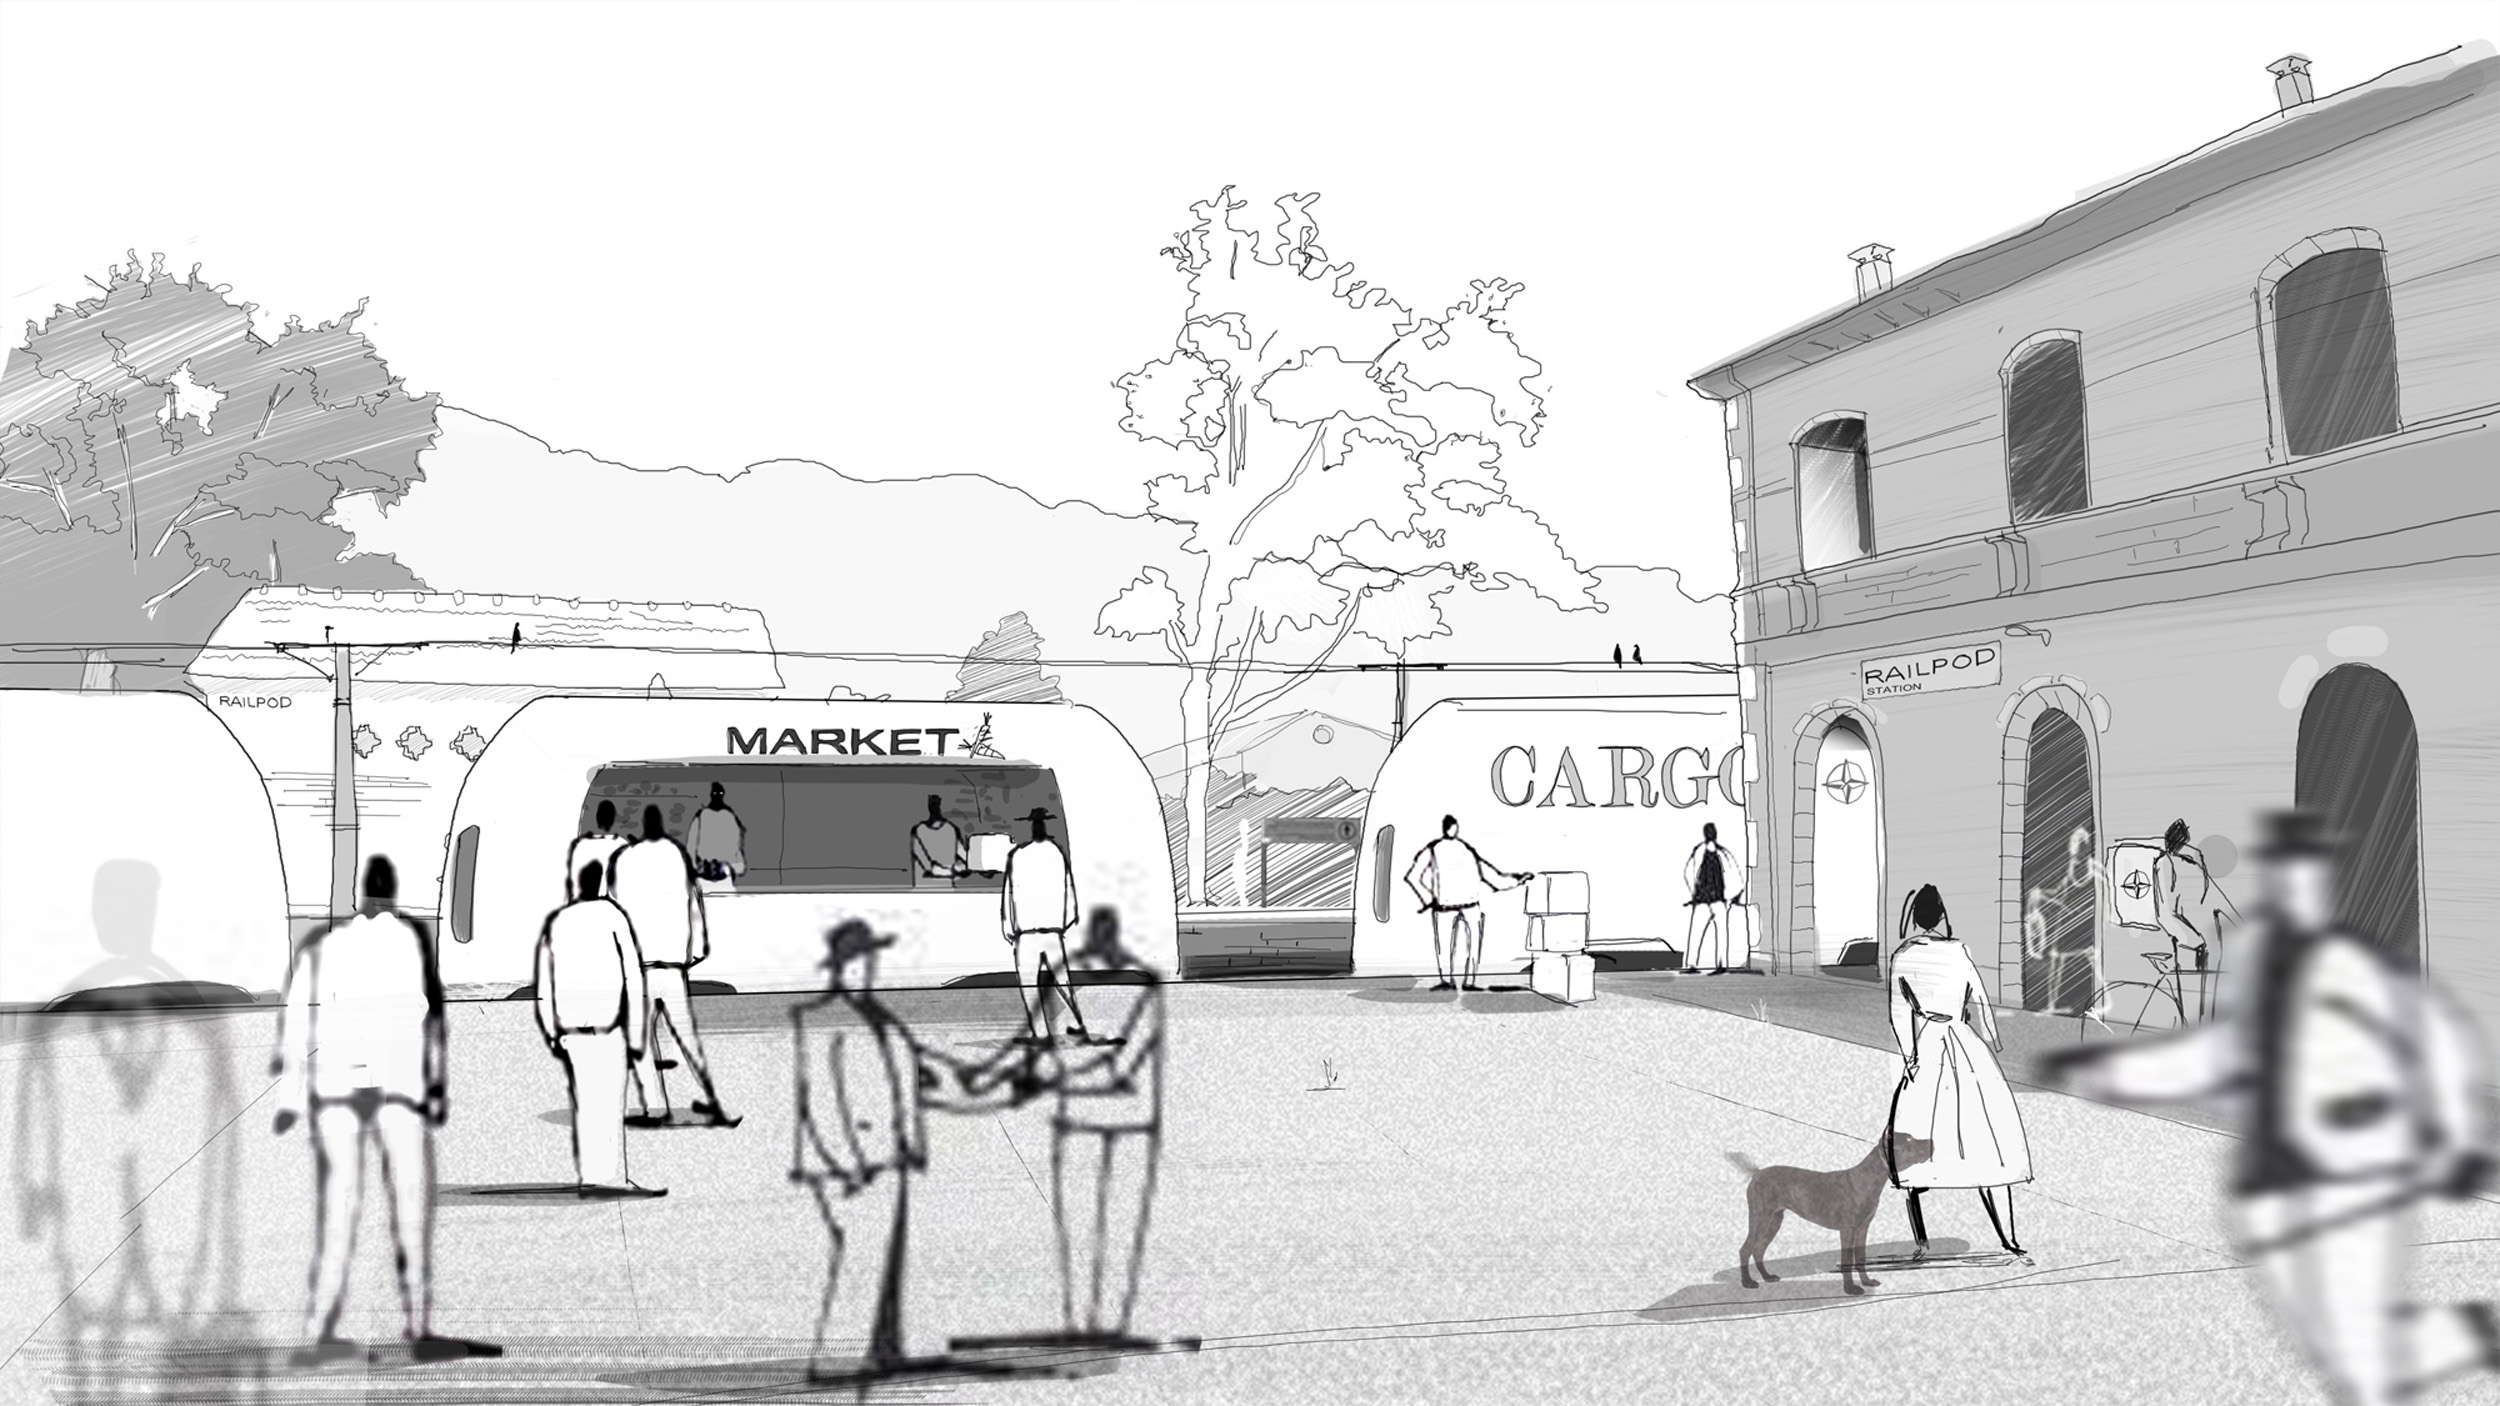 The station as market place enabled by Railpods